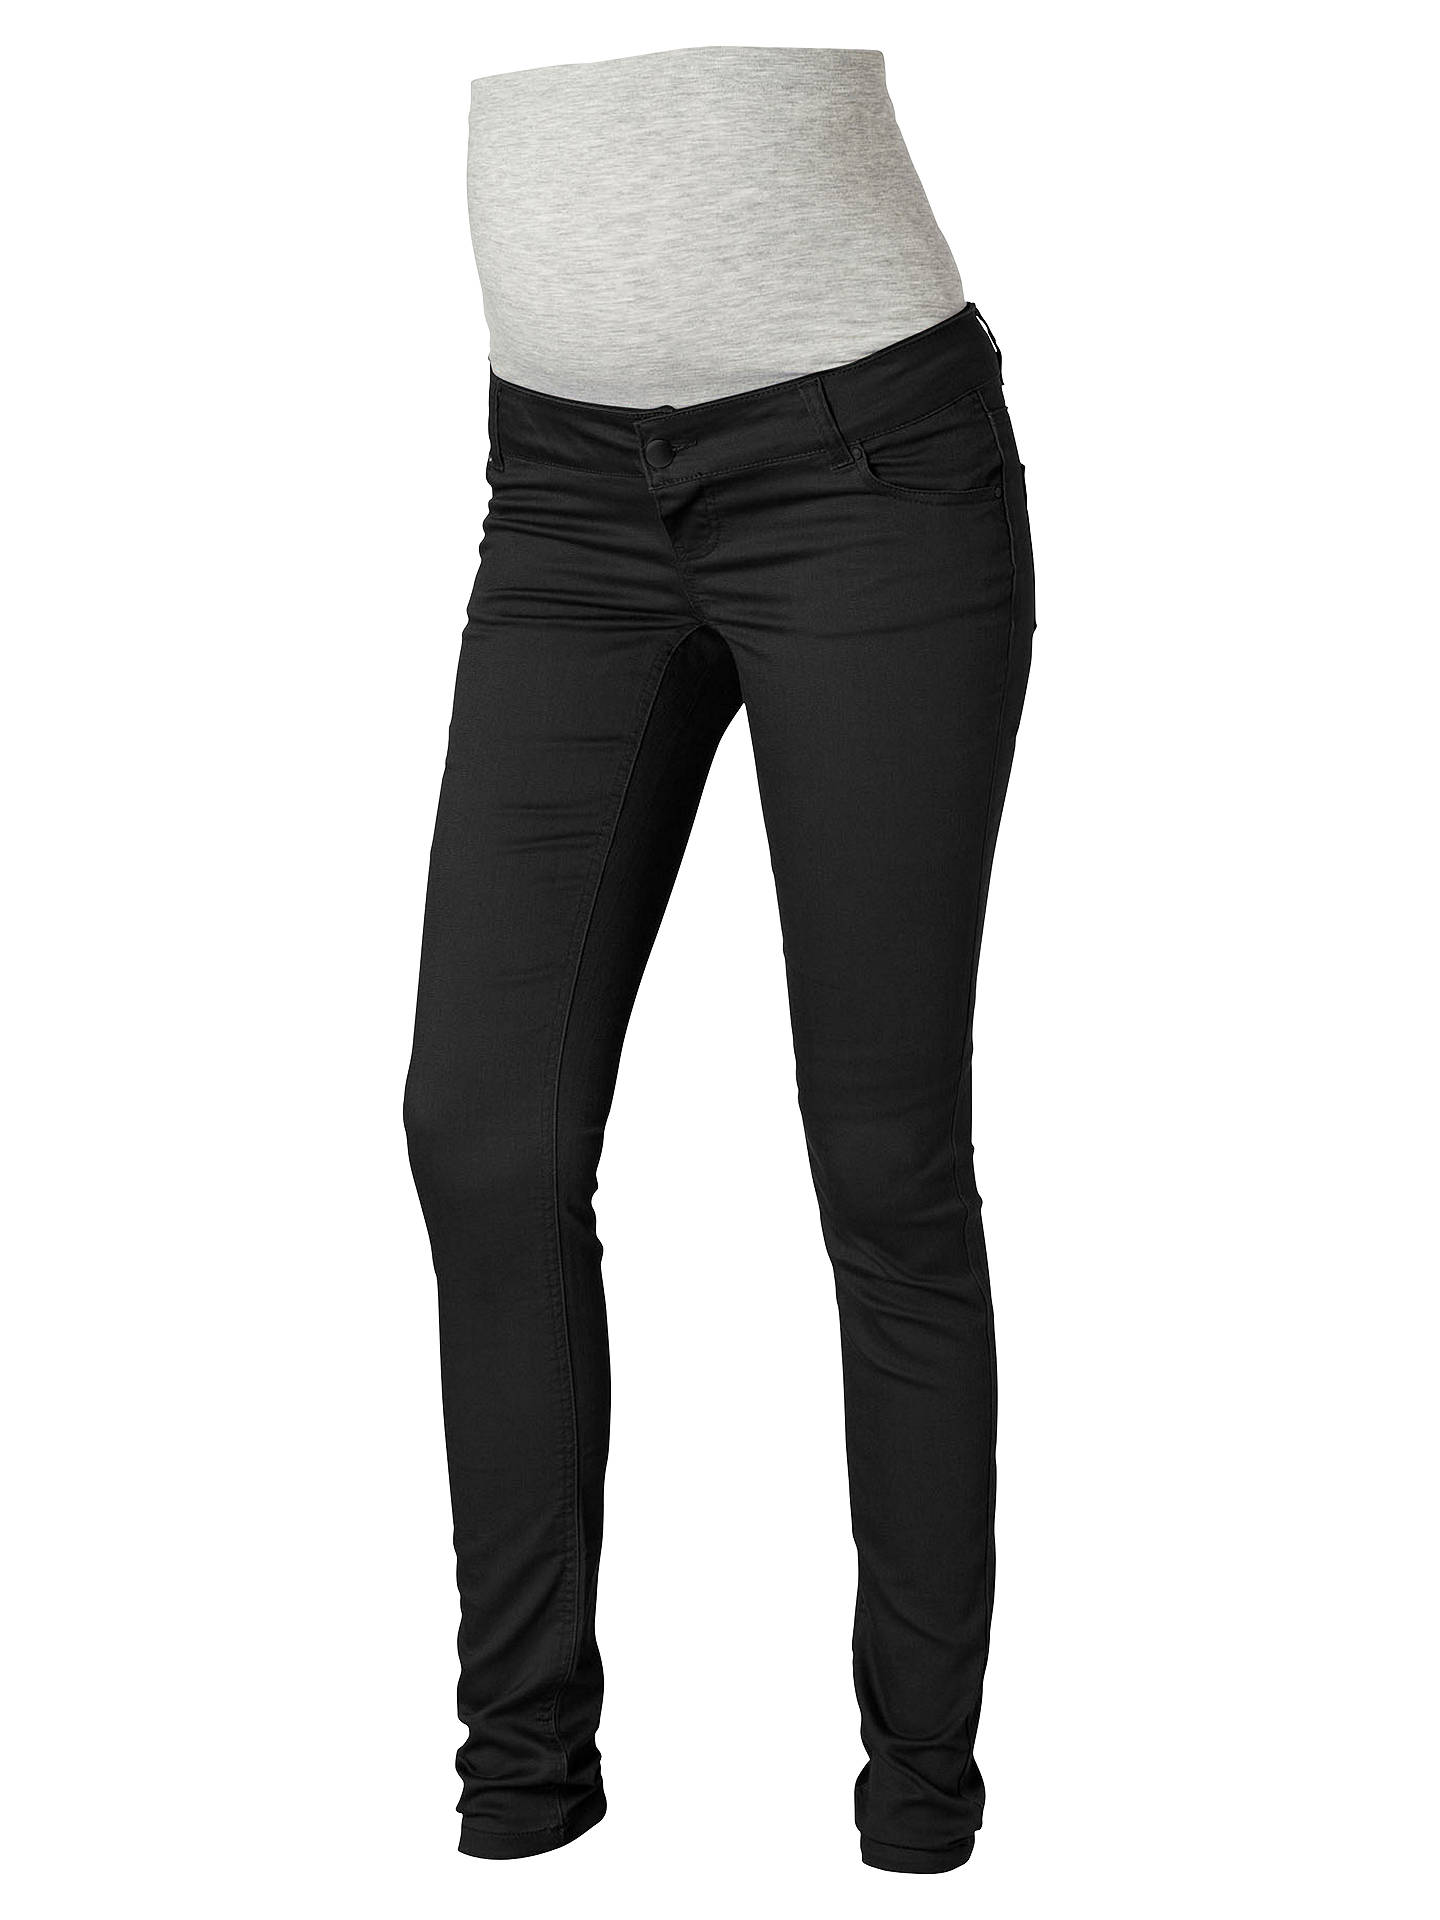 c69c206841d0a Buy Mamalicious Noos Shelly Slim Fit Maternity Jeans, Black, 27R Online at  johnlewis.